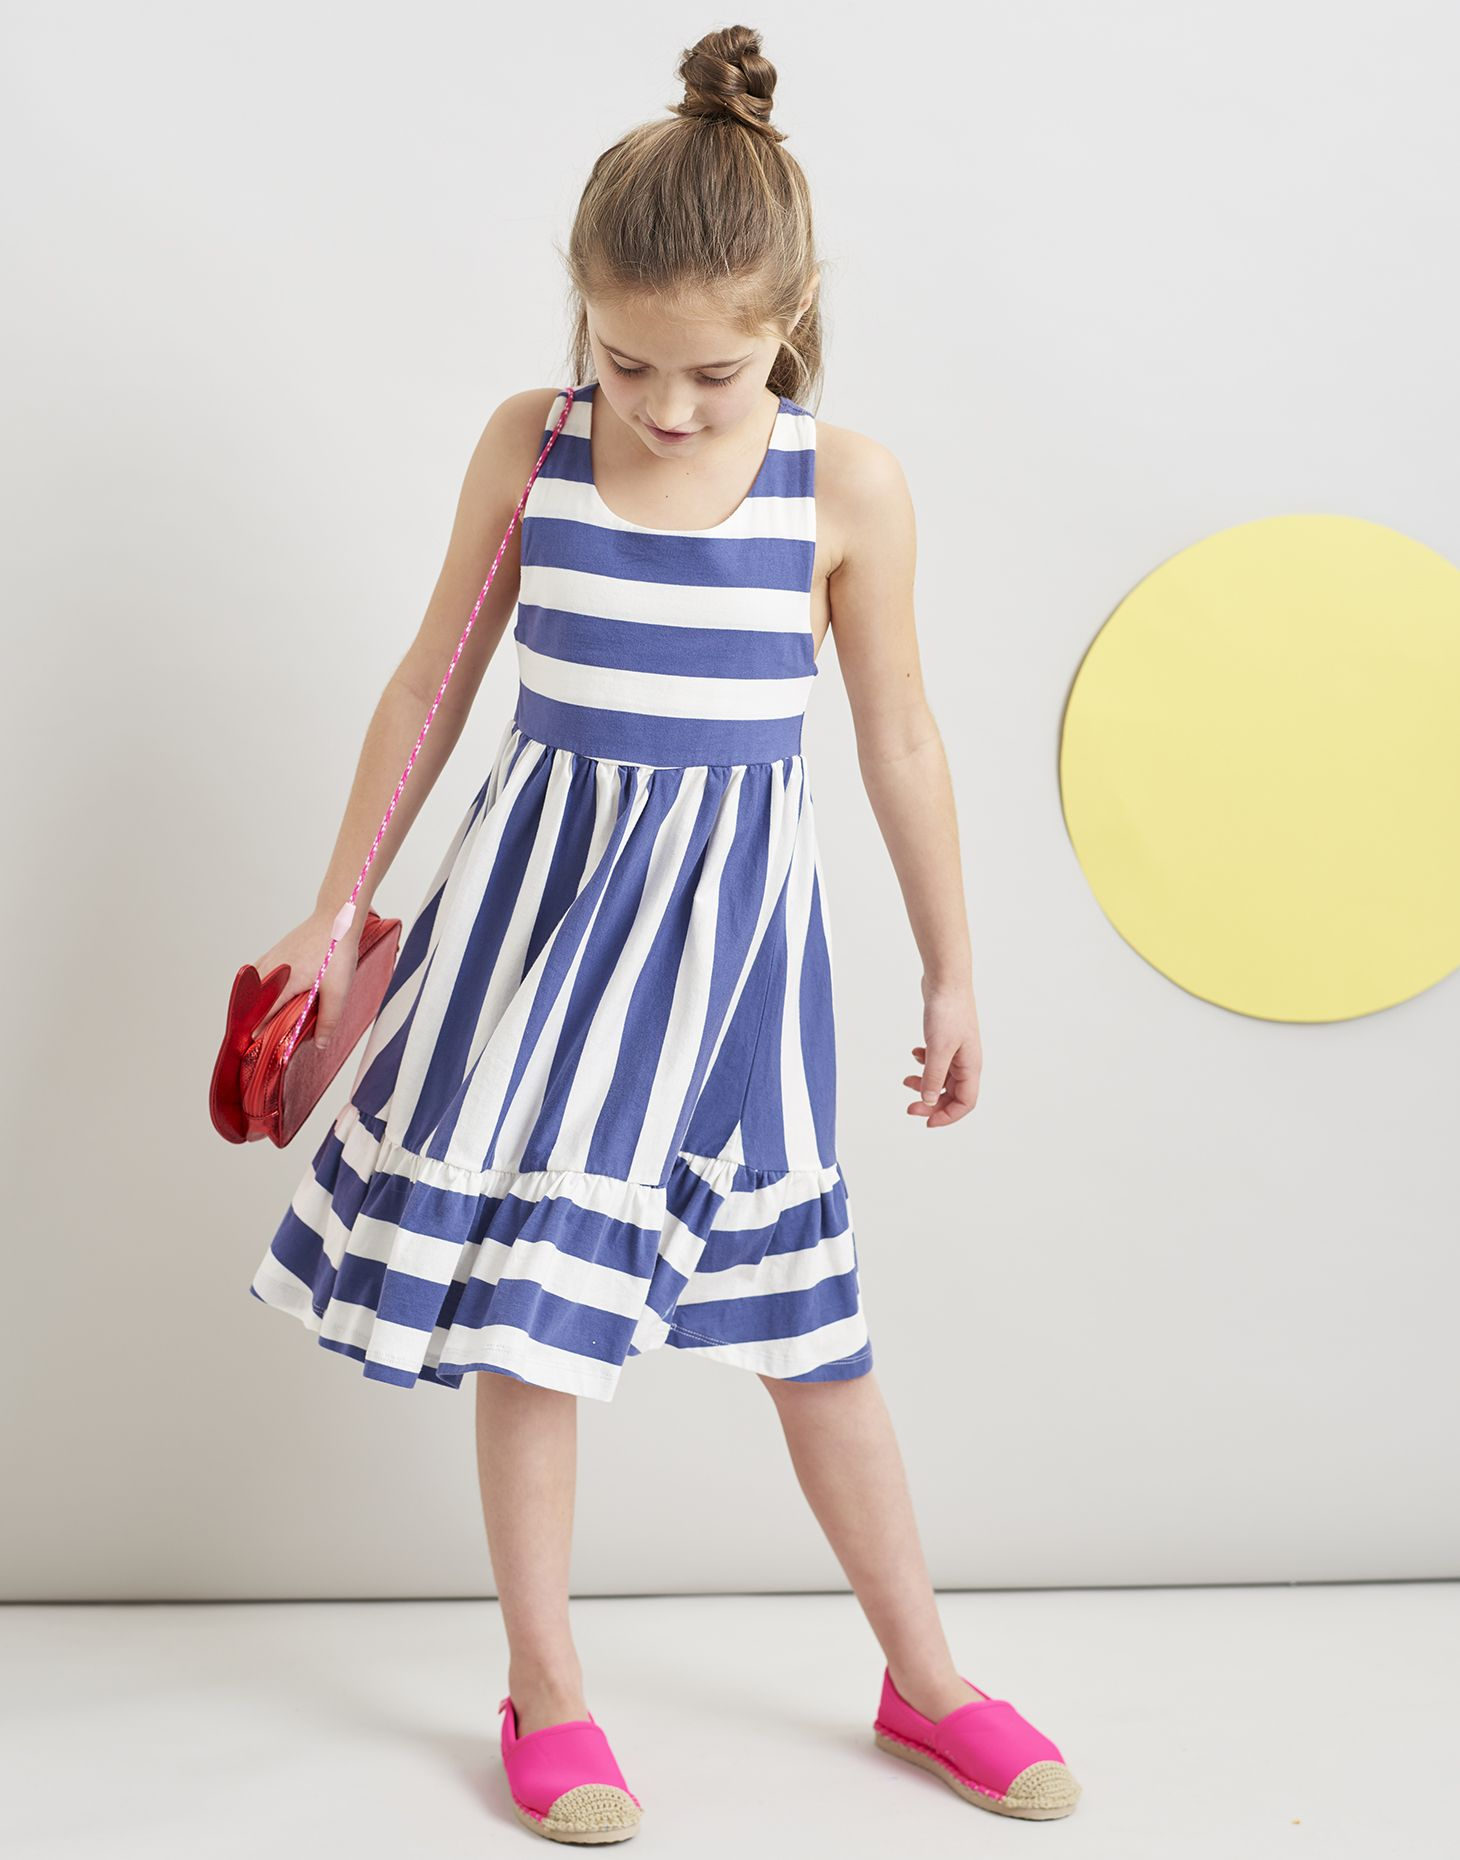 f39ba3094b38 Juno CREAM BLUE STRIPE Peplum Midi Dress 3-12 Yr | Joules UK